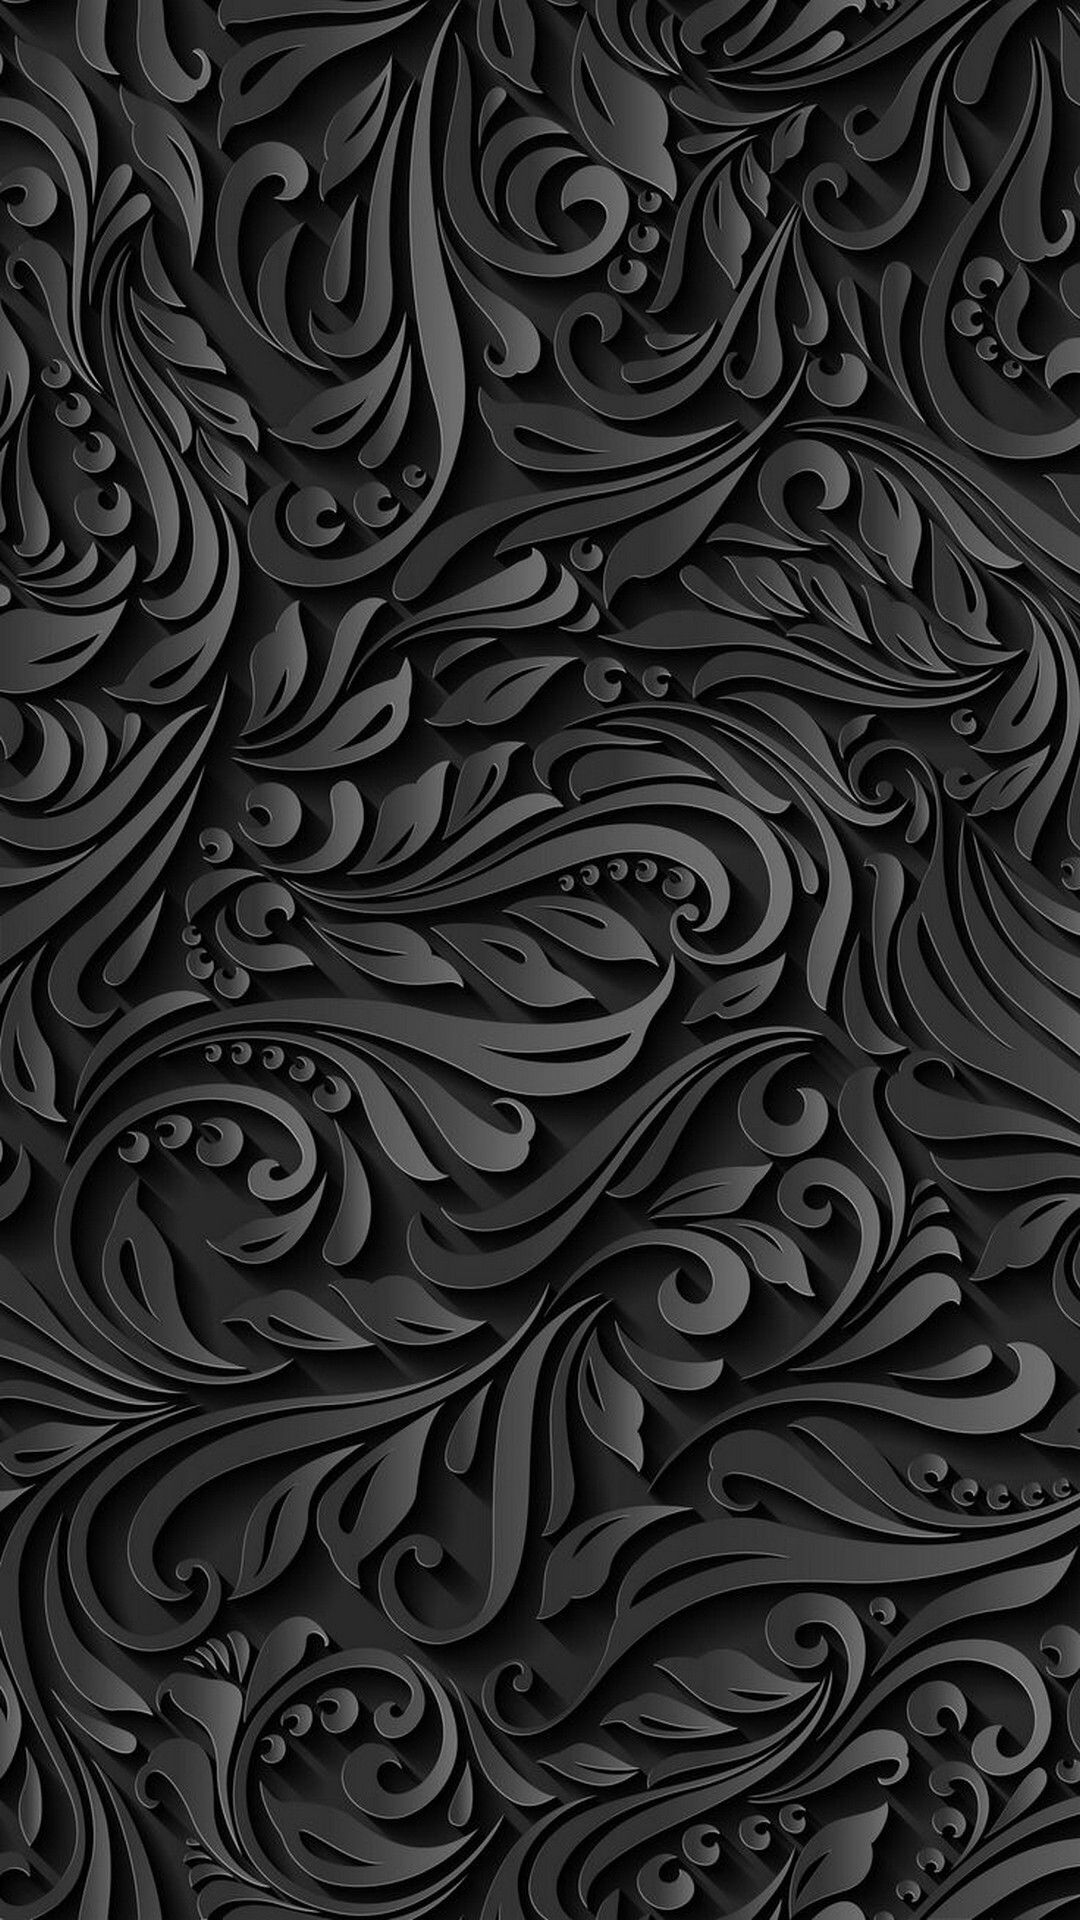 2018 Download Black Pattern iPhone Wallpaper Full Size - 3D iPhone Wallpaper